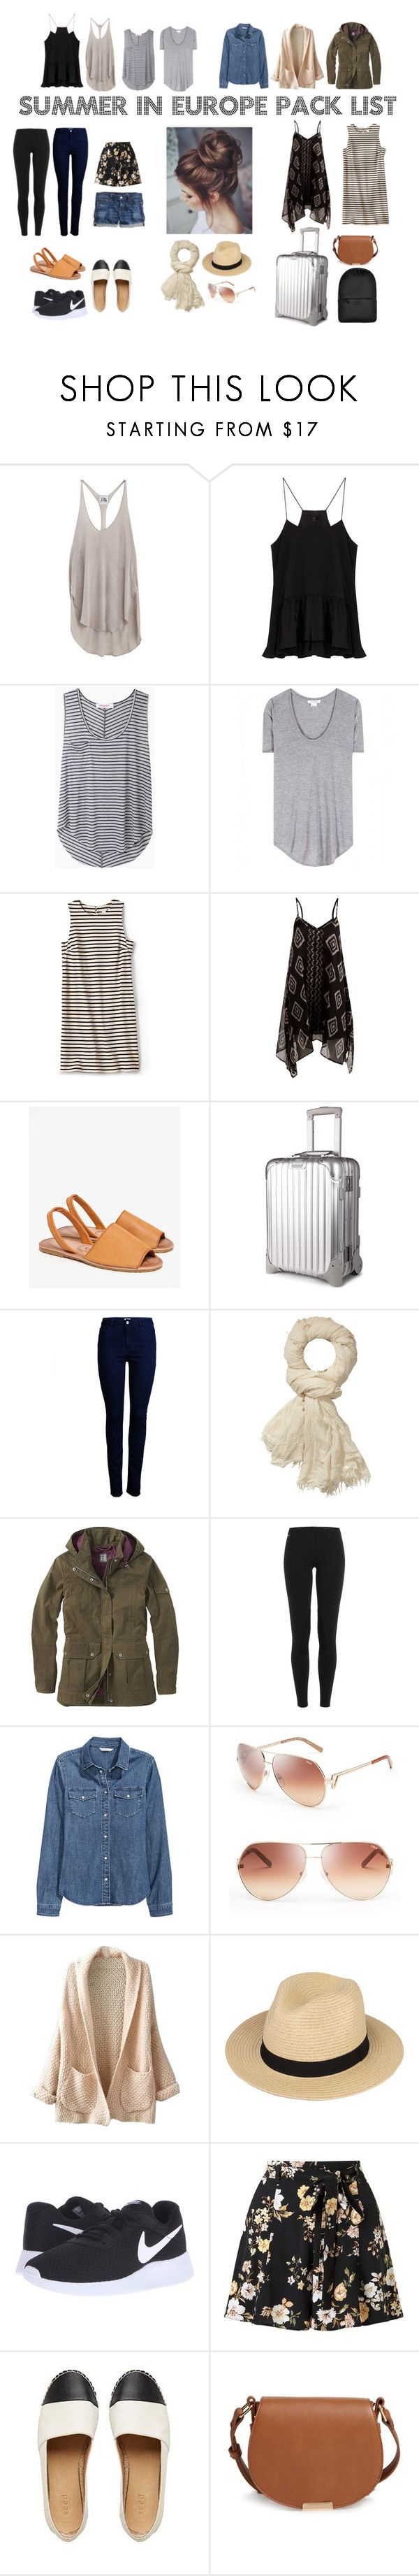 Summer in Europe pack list by singlecatlady on Polyvore featuring FOSSIL Billabong WithChic